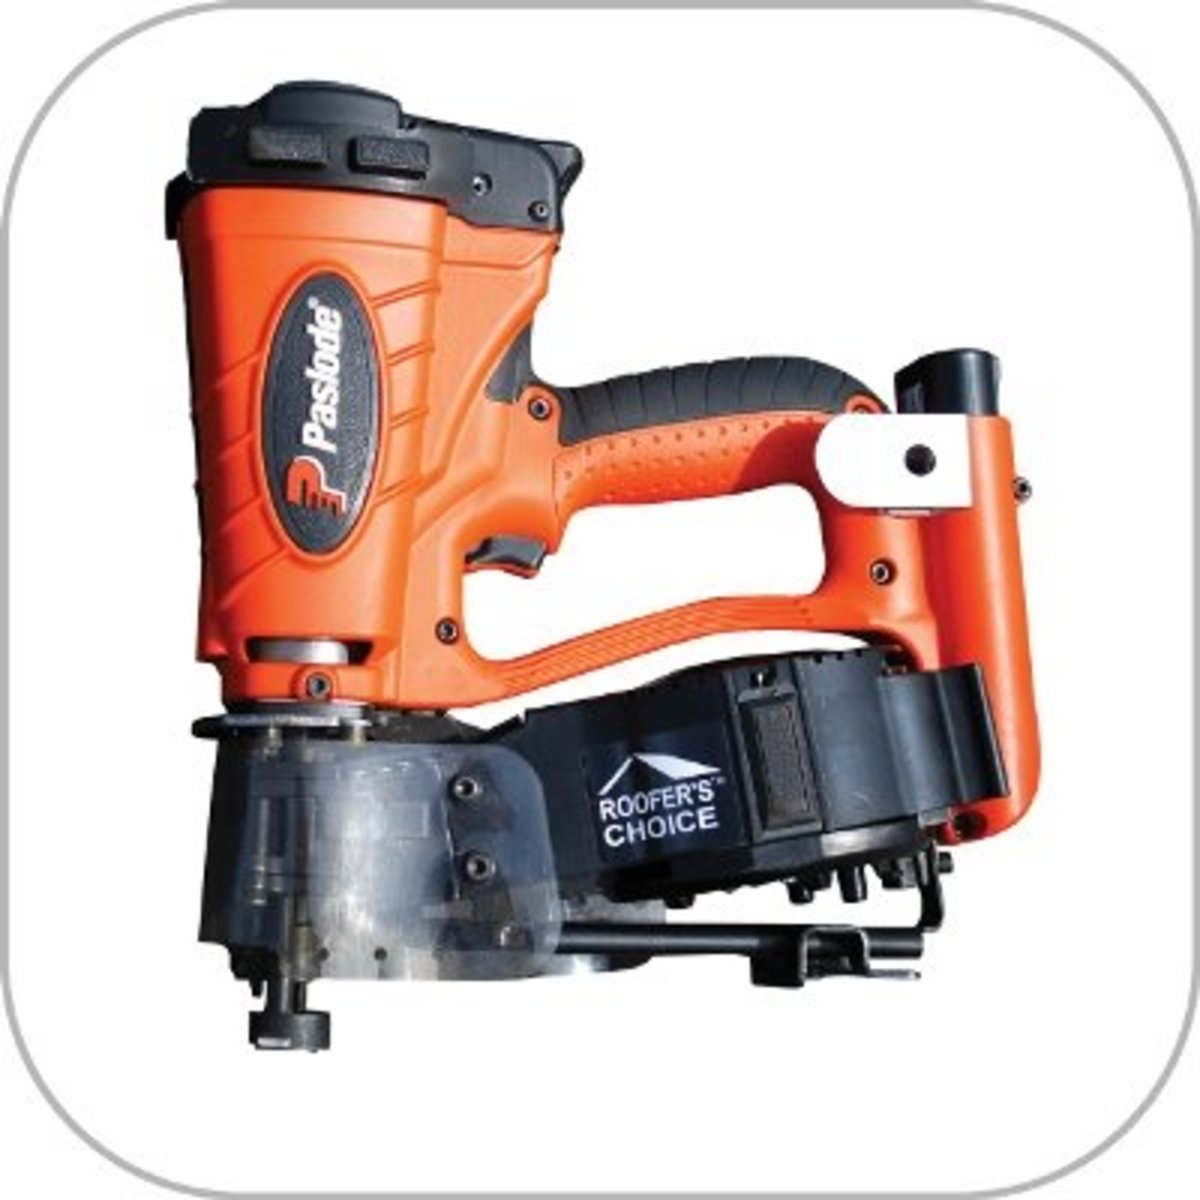 Paslode cr175 c cordless roofing nailer (coil magazine).